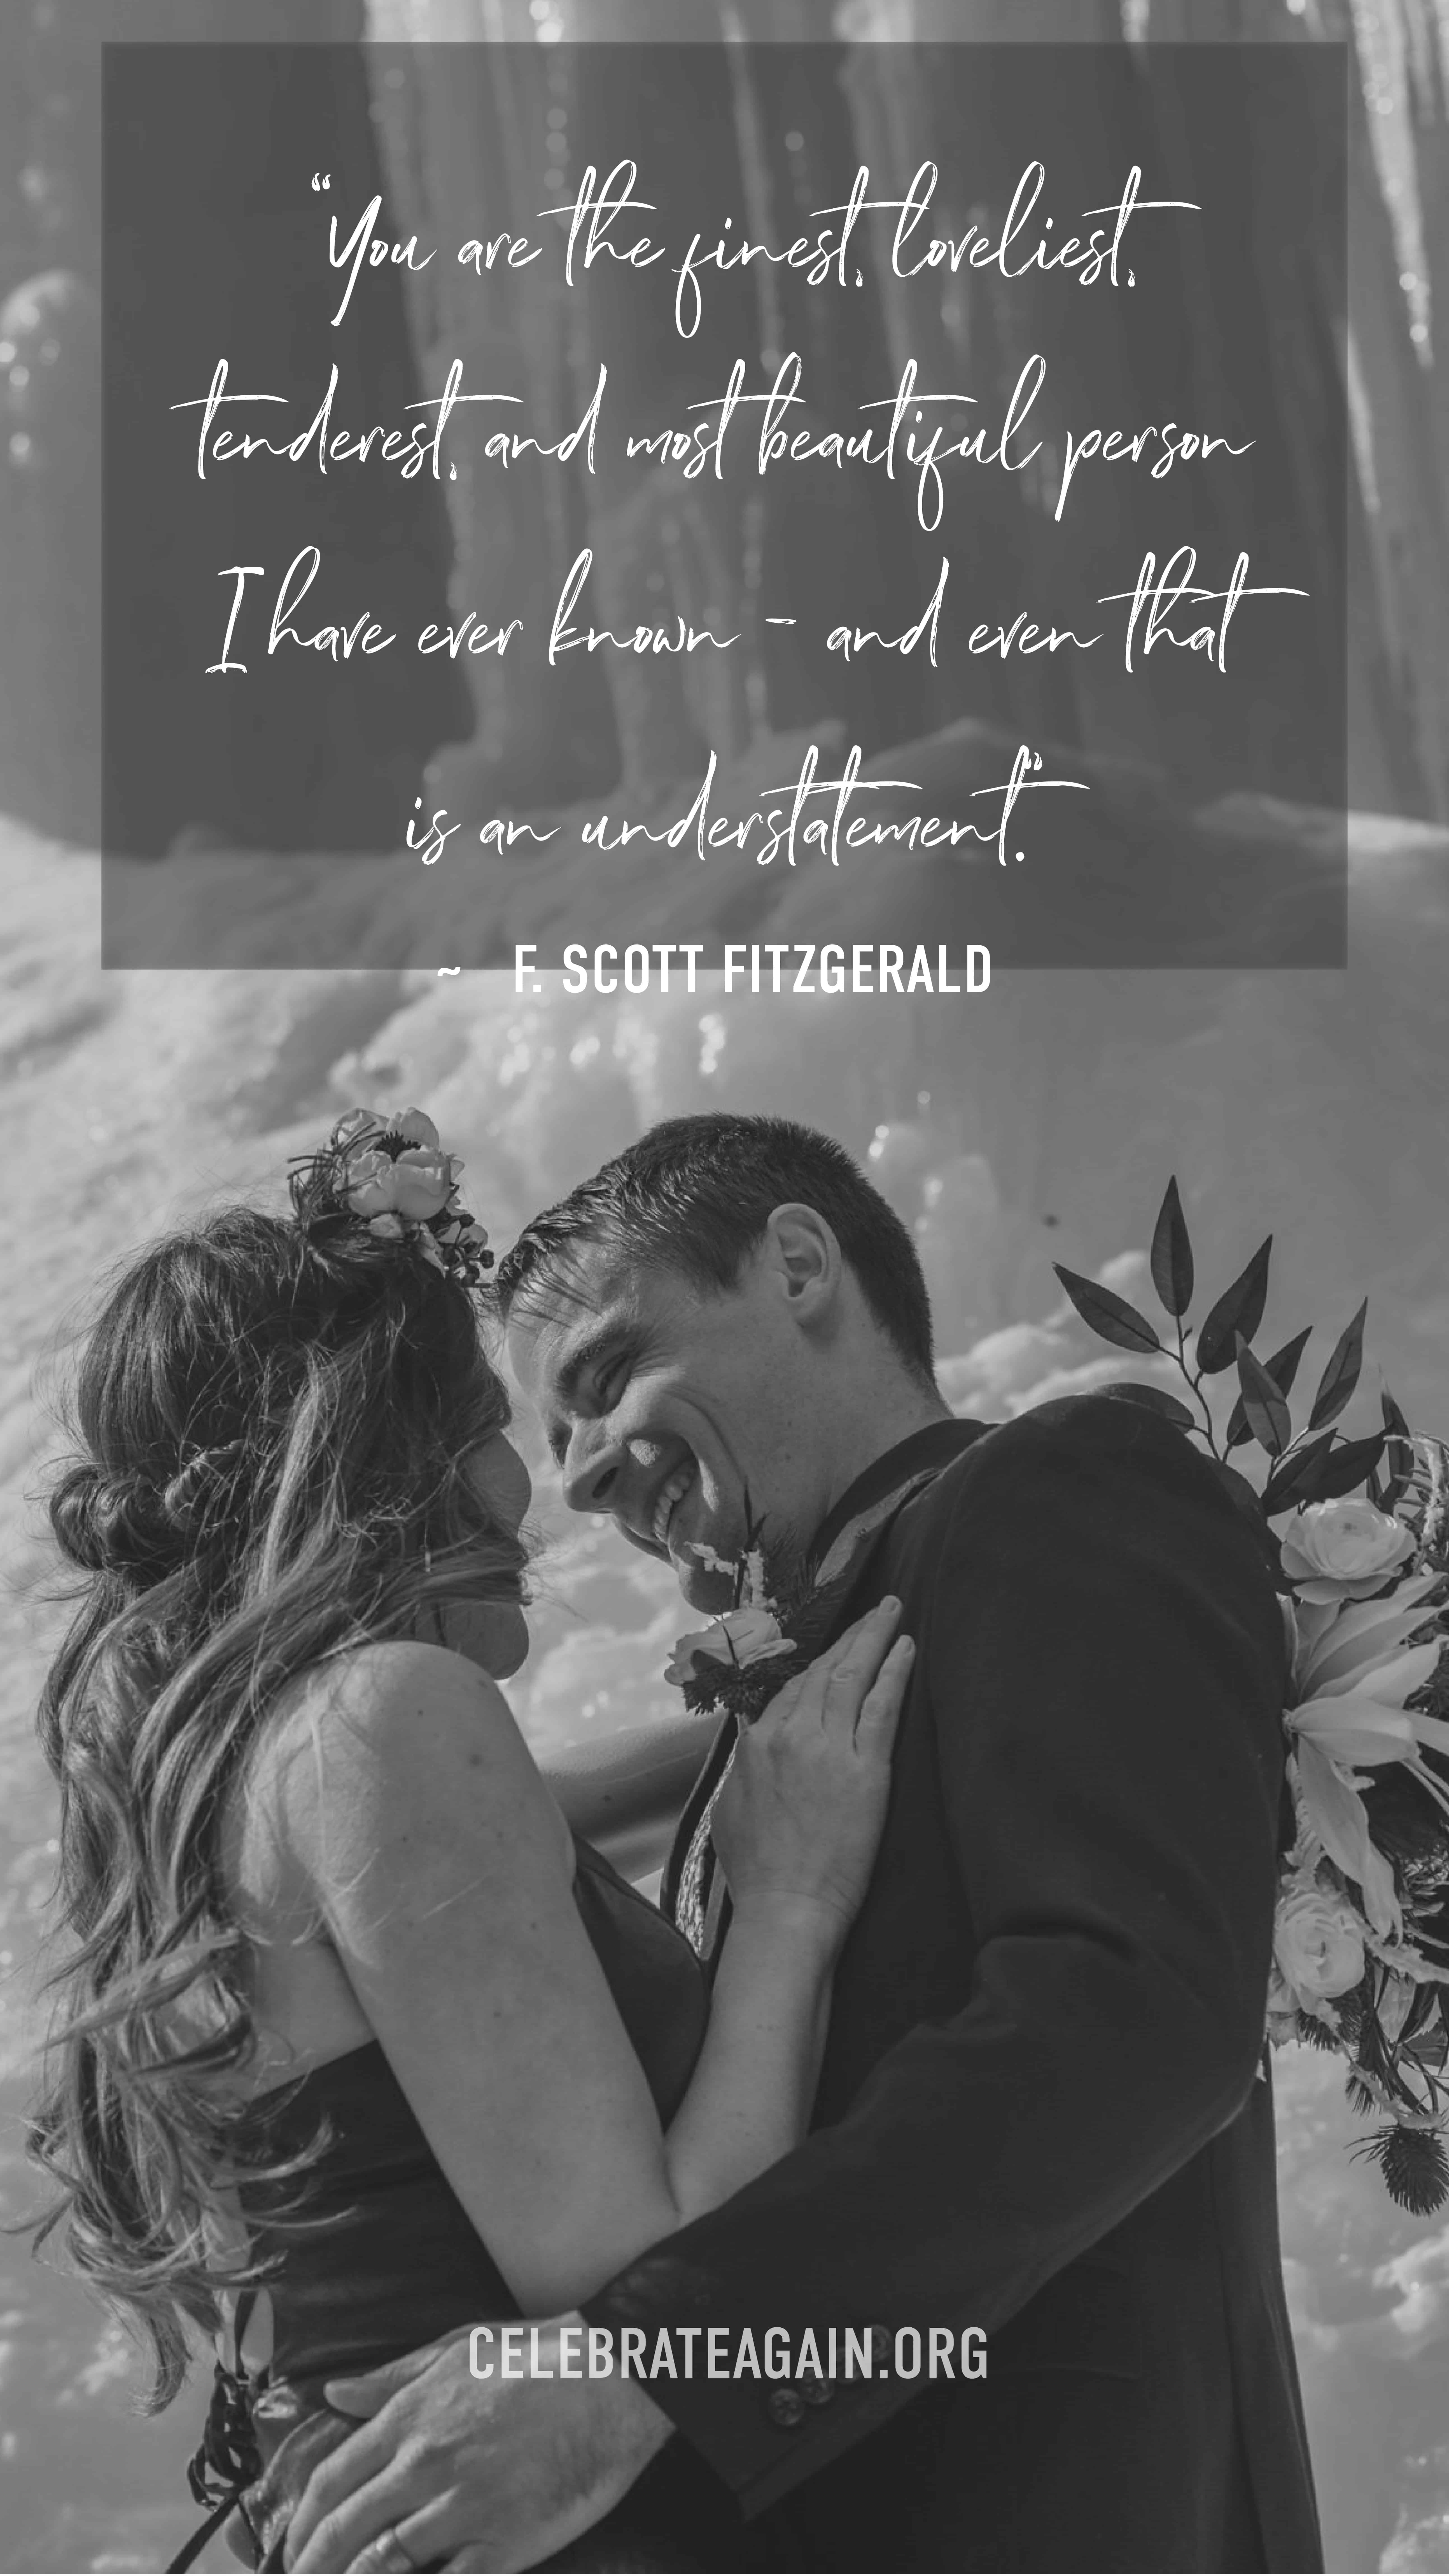 """romantic love quote """"You are the finest, loveliest, tenderest, and most beautiful person I have ever known -- and even that is an understatement."""" F. Scott Fitzgerald couple cuddling with male smiling at female image by celebrateagain.org"""